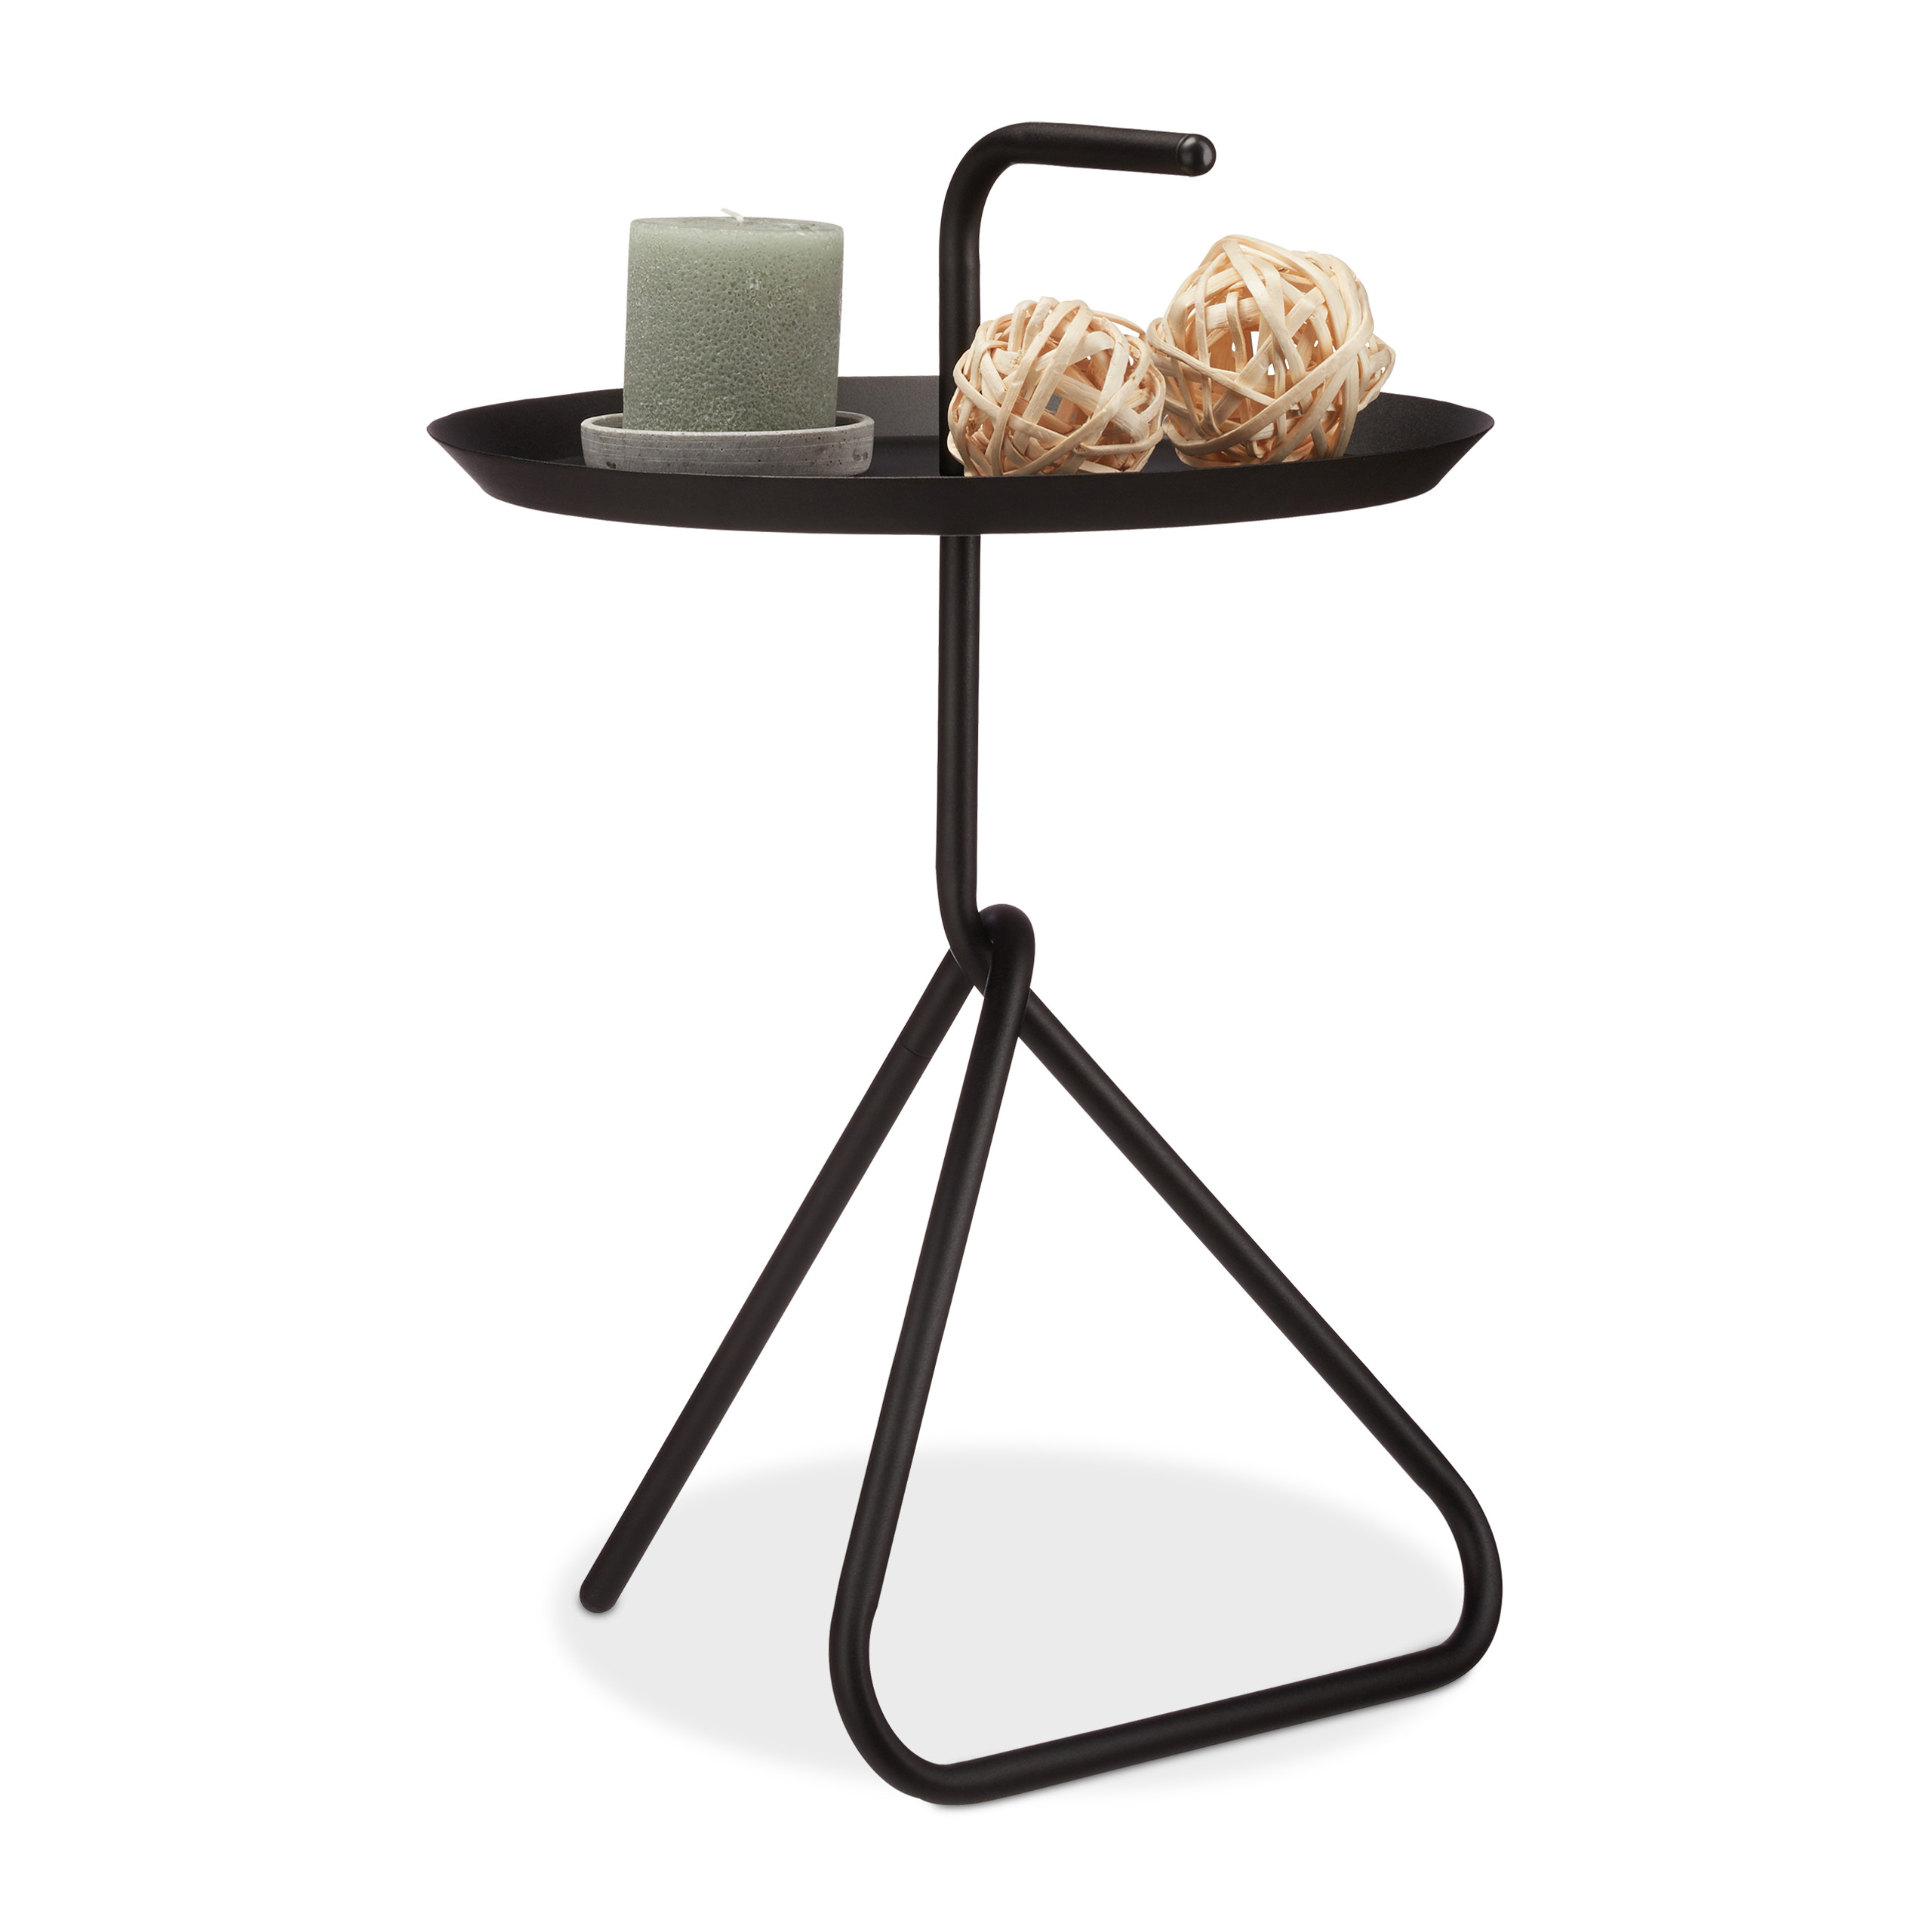 Metal Side Table With Handle, Storage Tray, Round Black